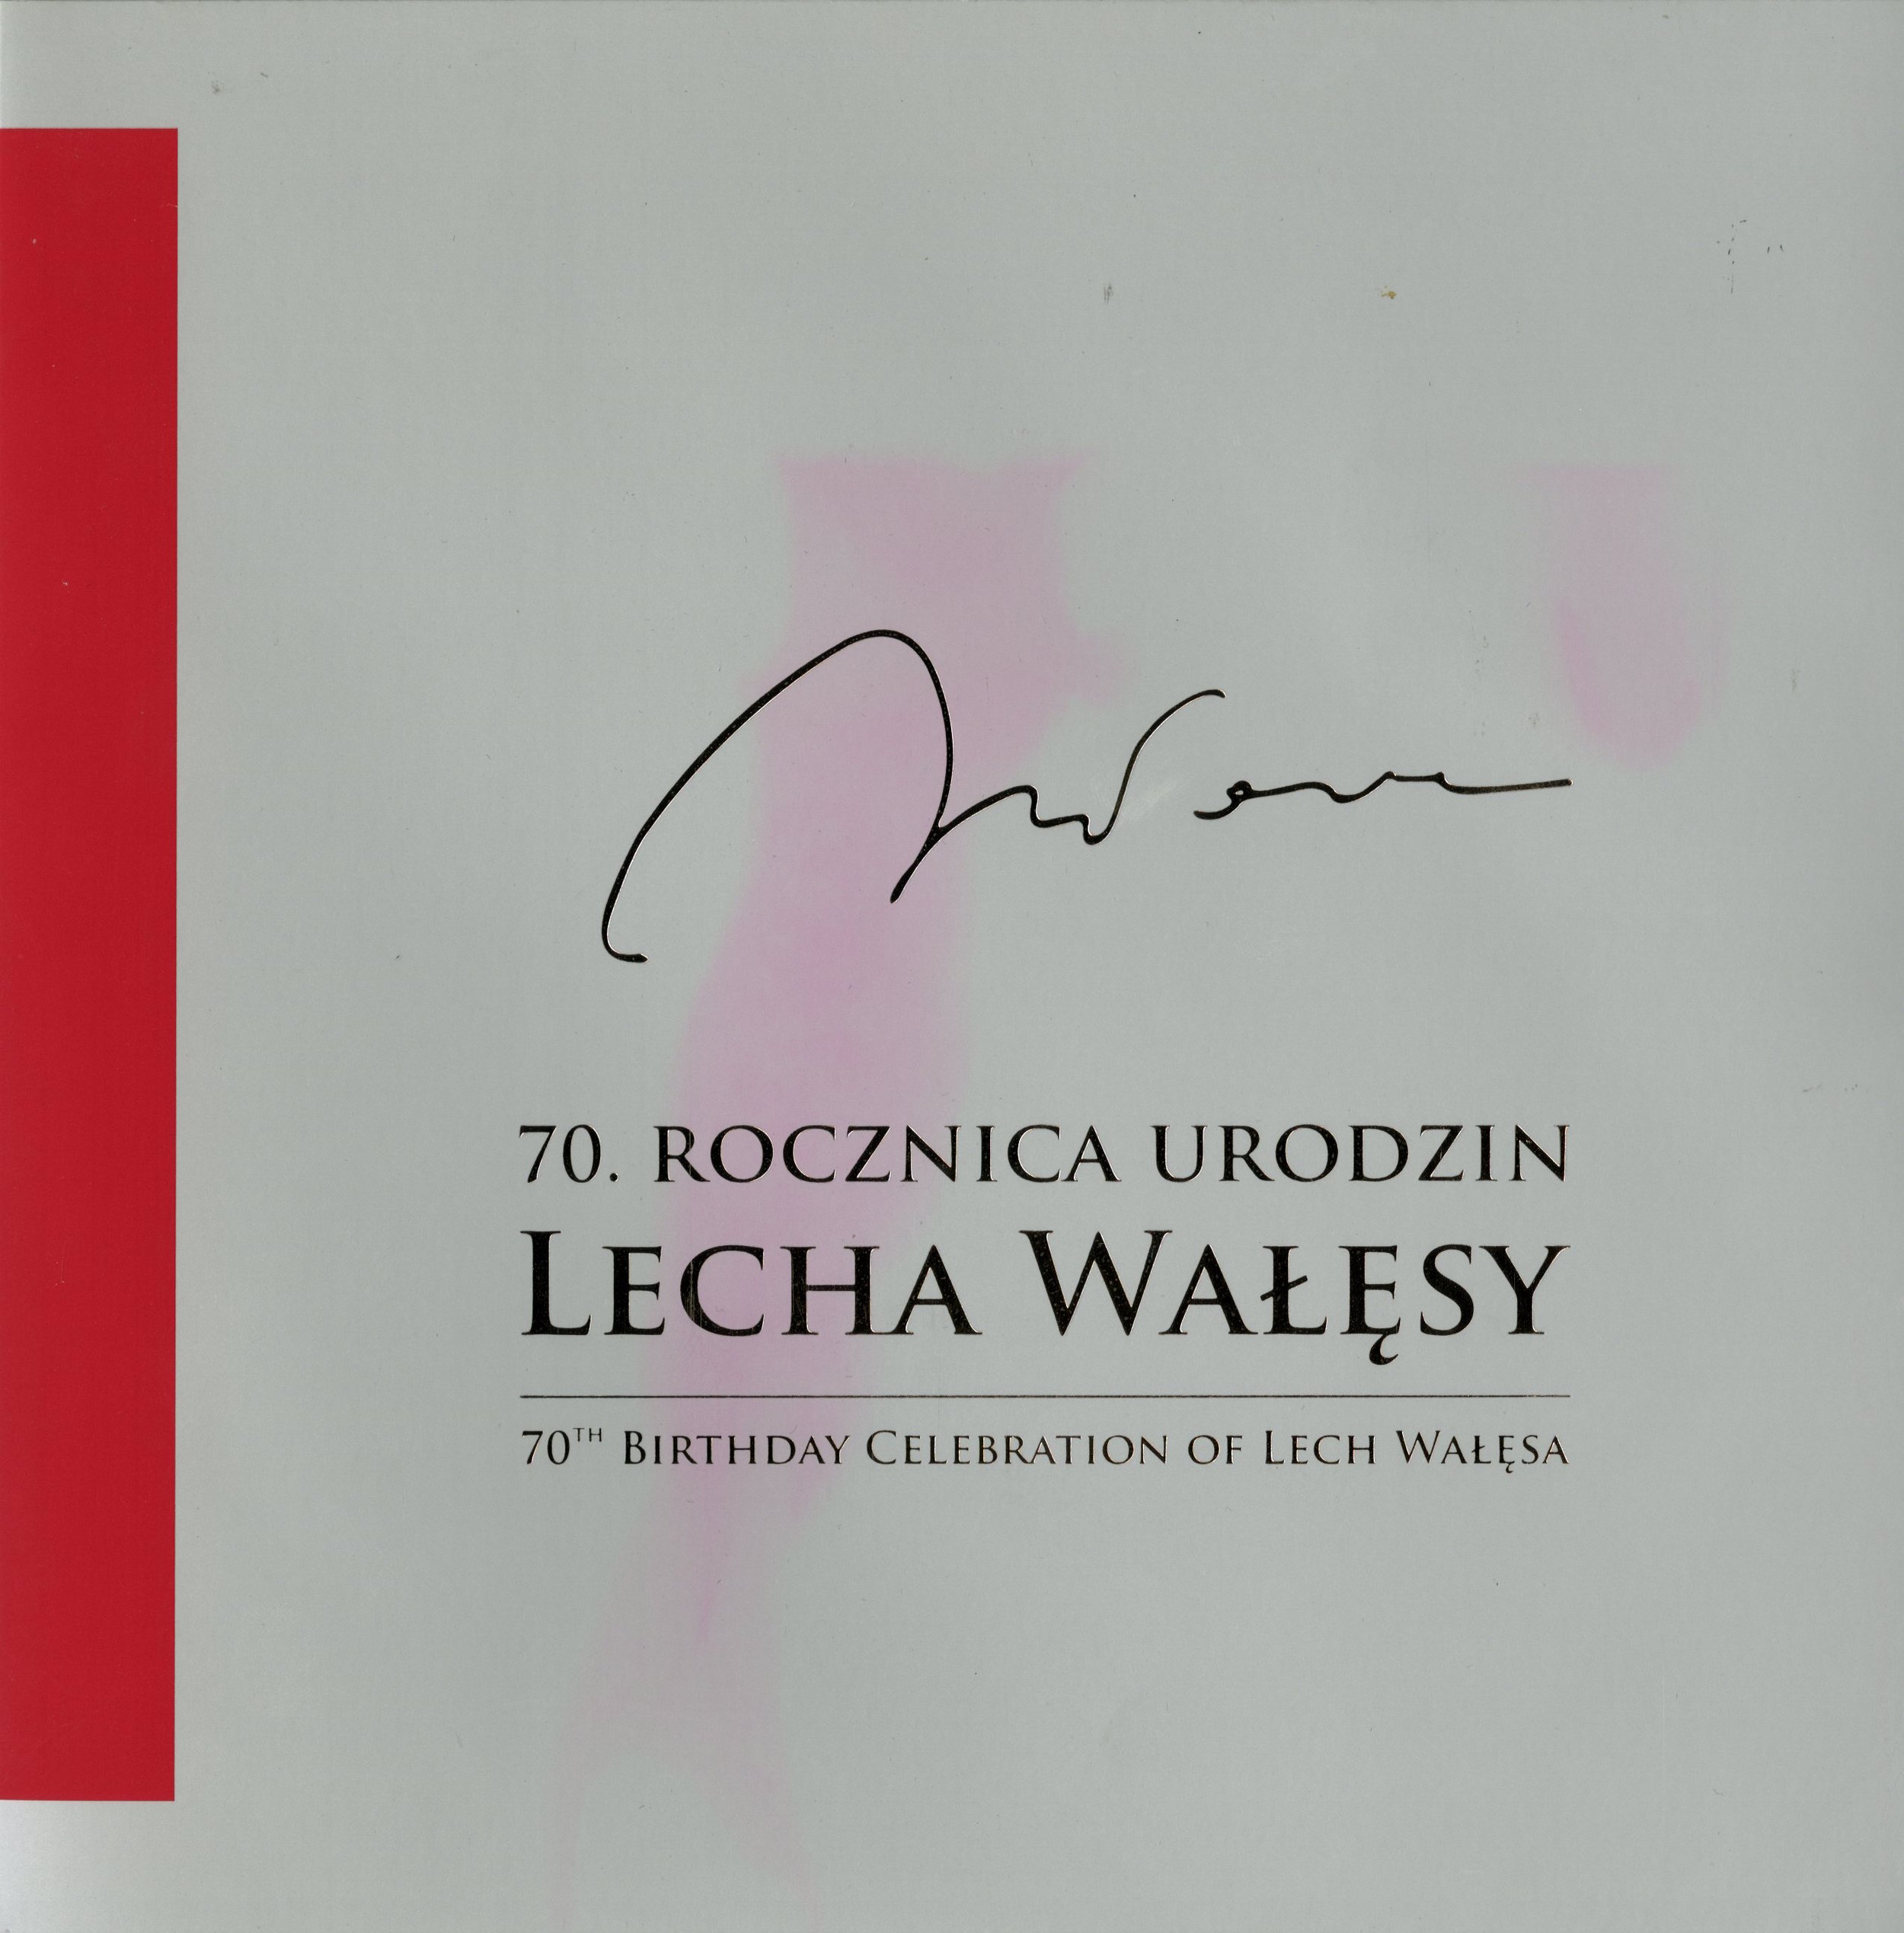 70th Birthday Celebration of Lech Walesa